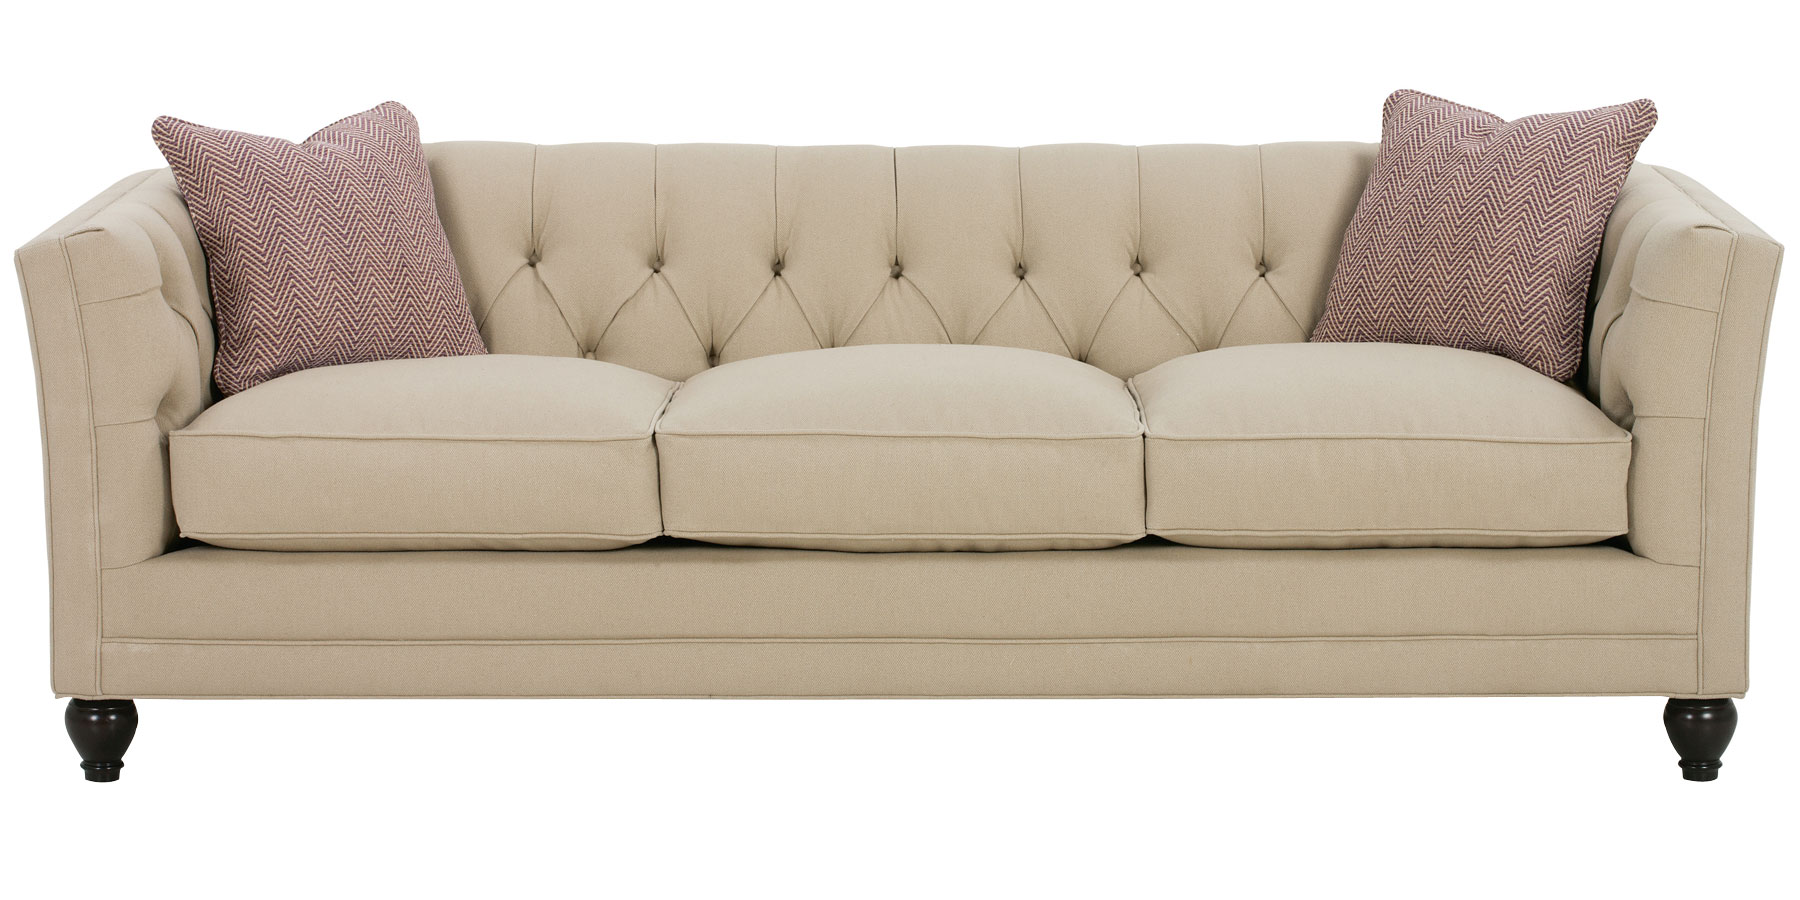 Tufted back fabric sofa collection club furniture for Tufted couches for sale